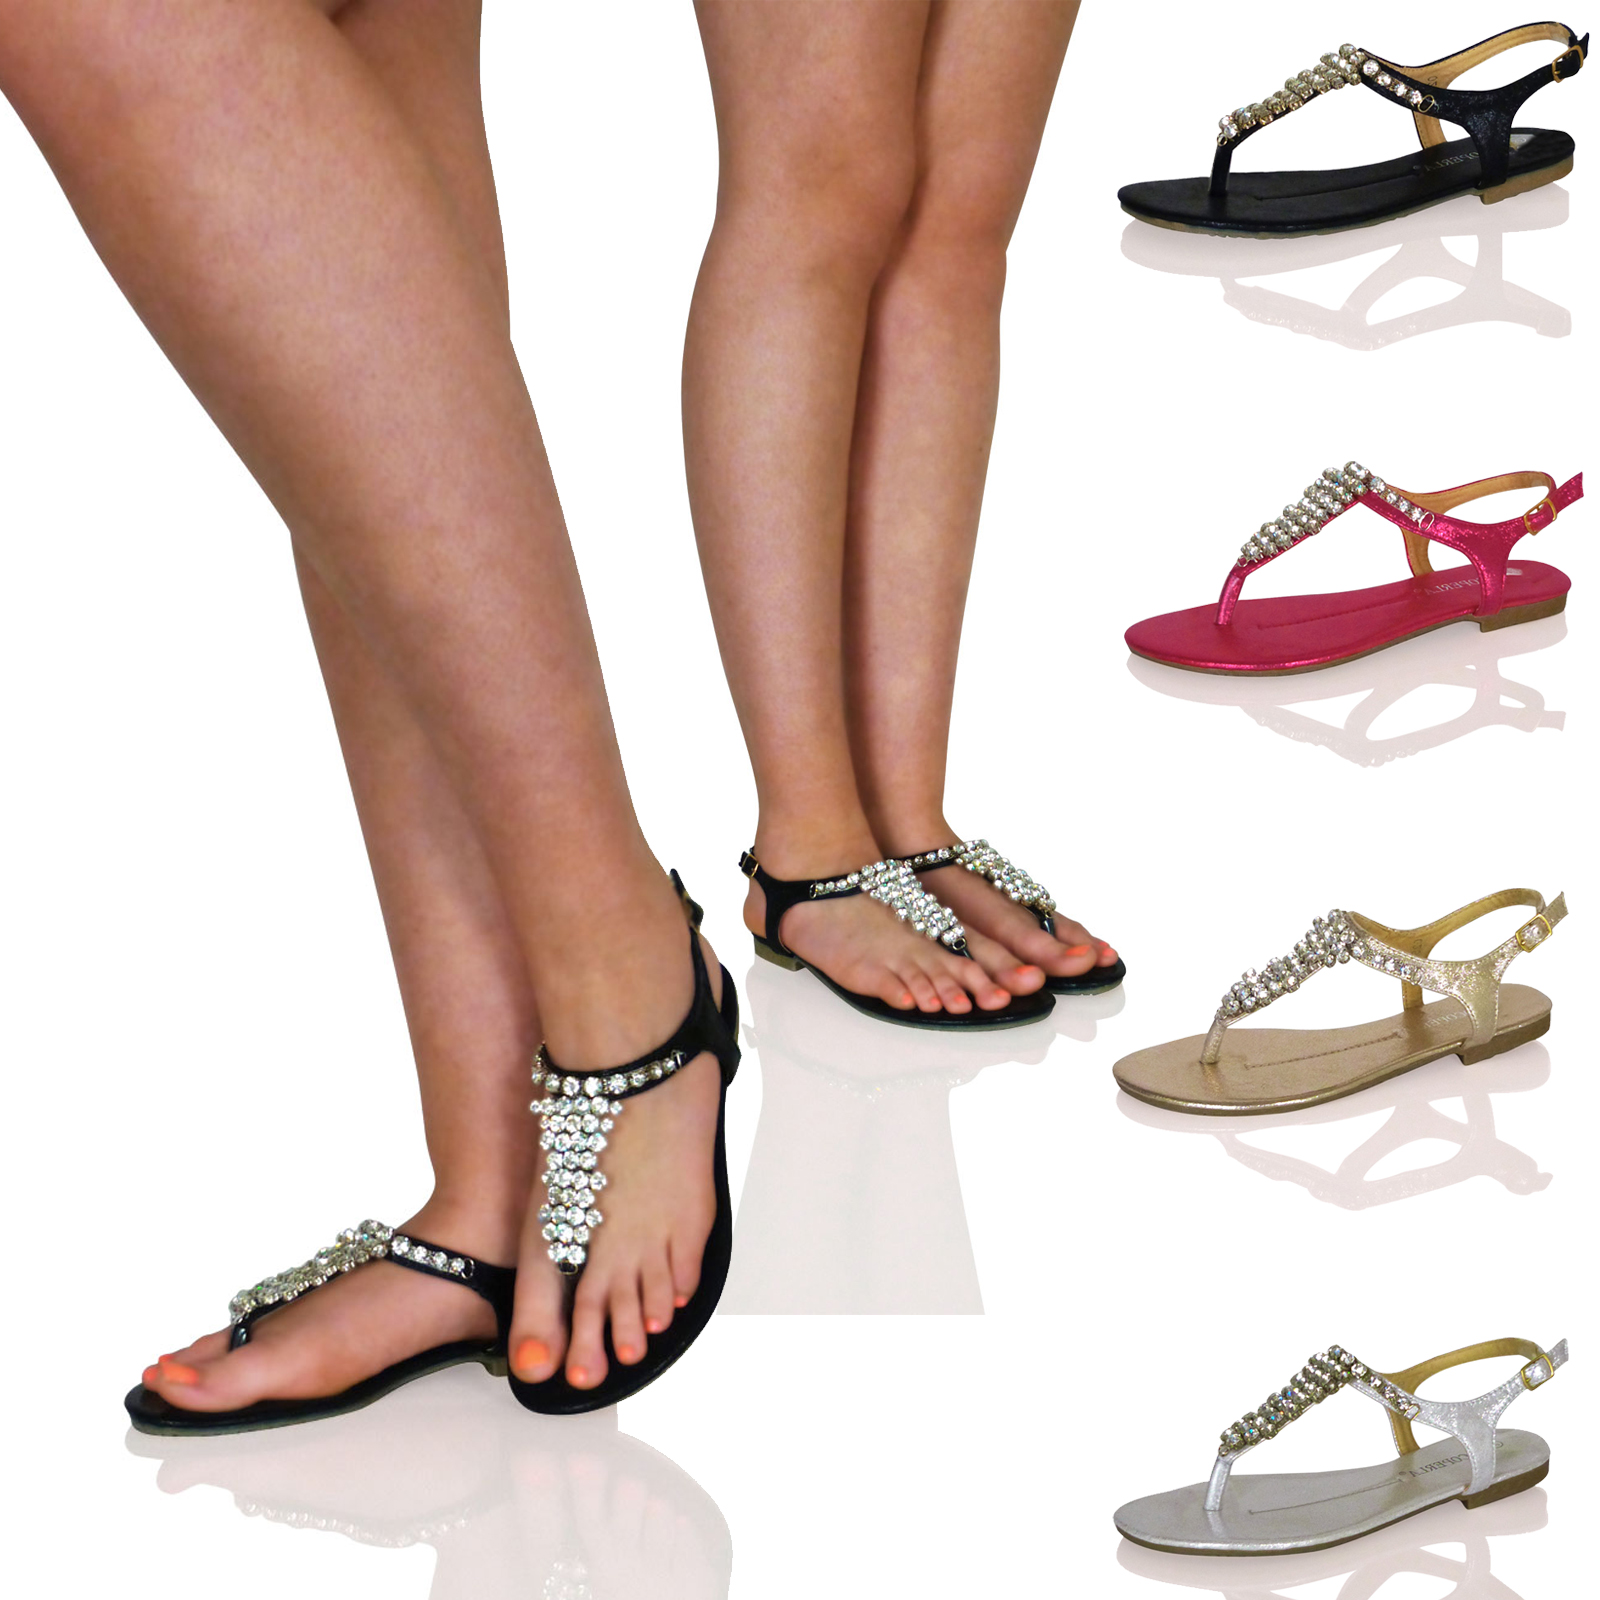 H4p womens diamante party sandals summer holiday ladies girls flip flops shoes